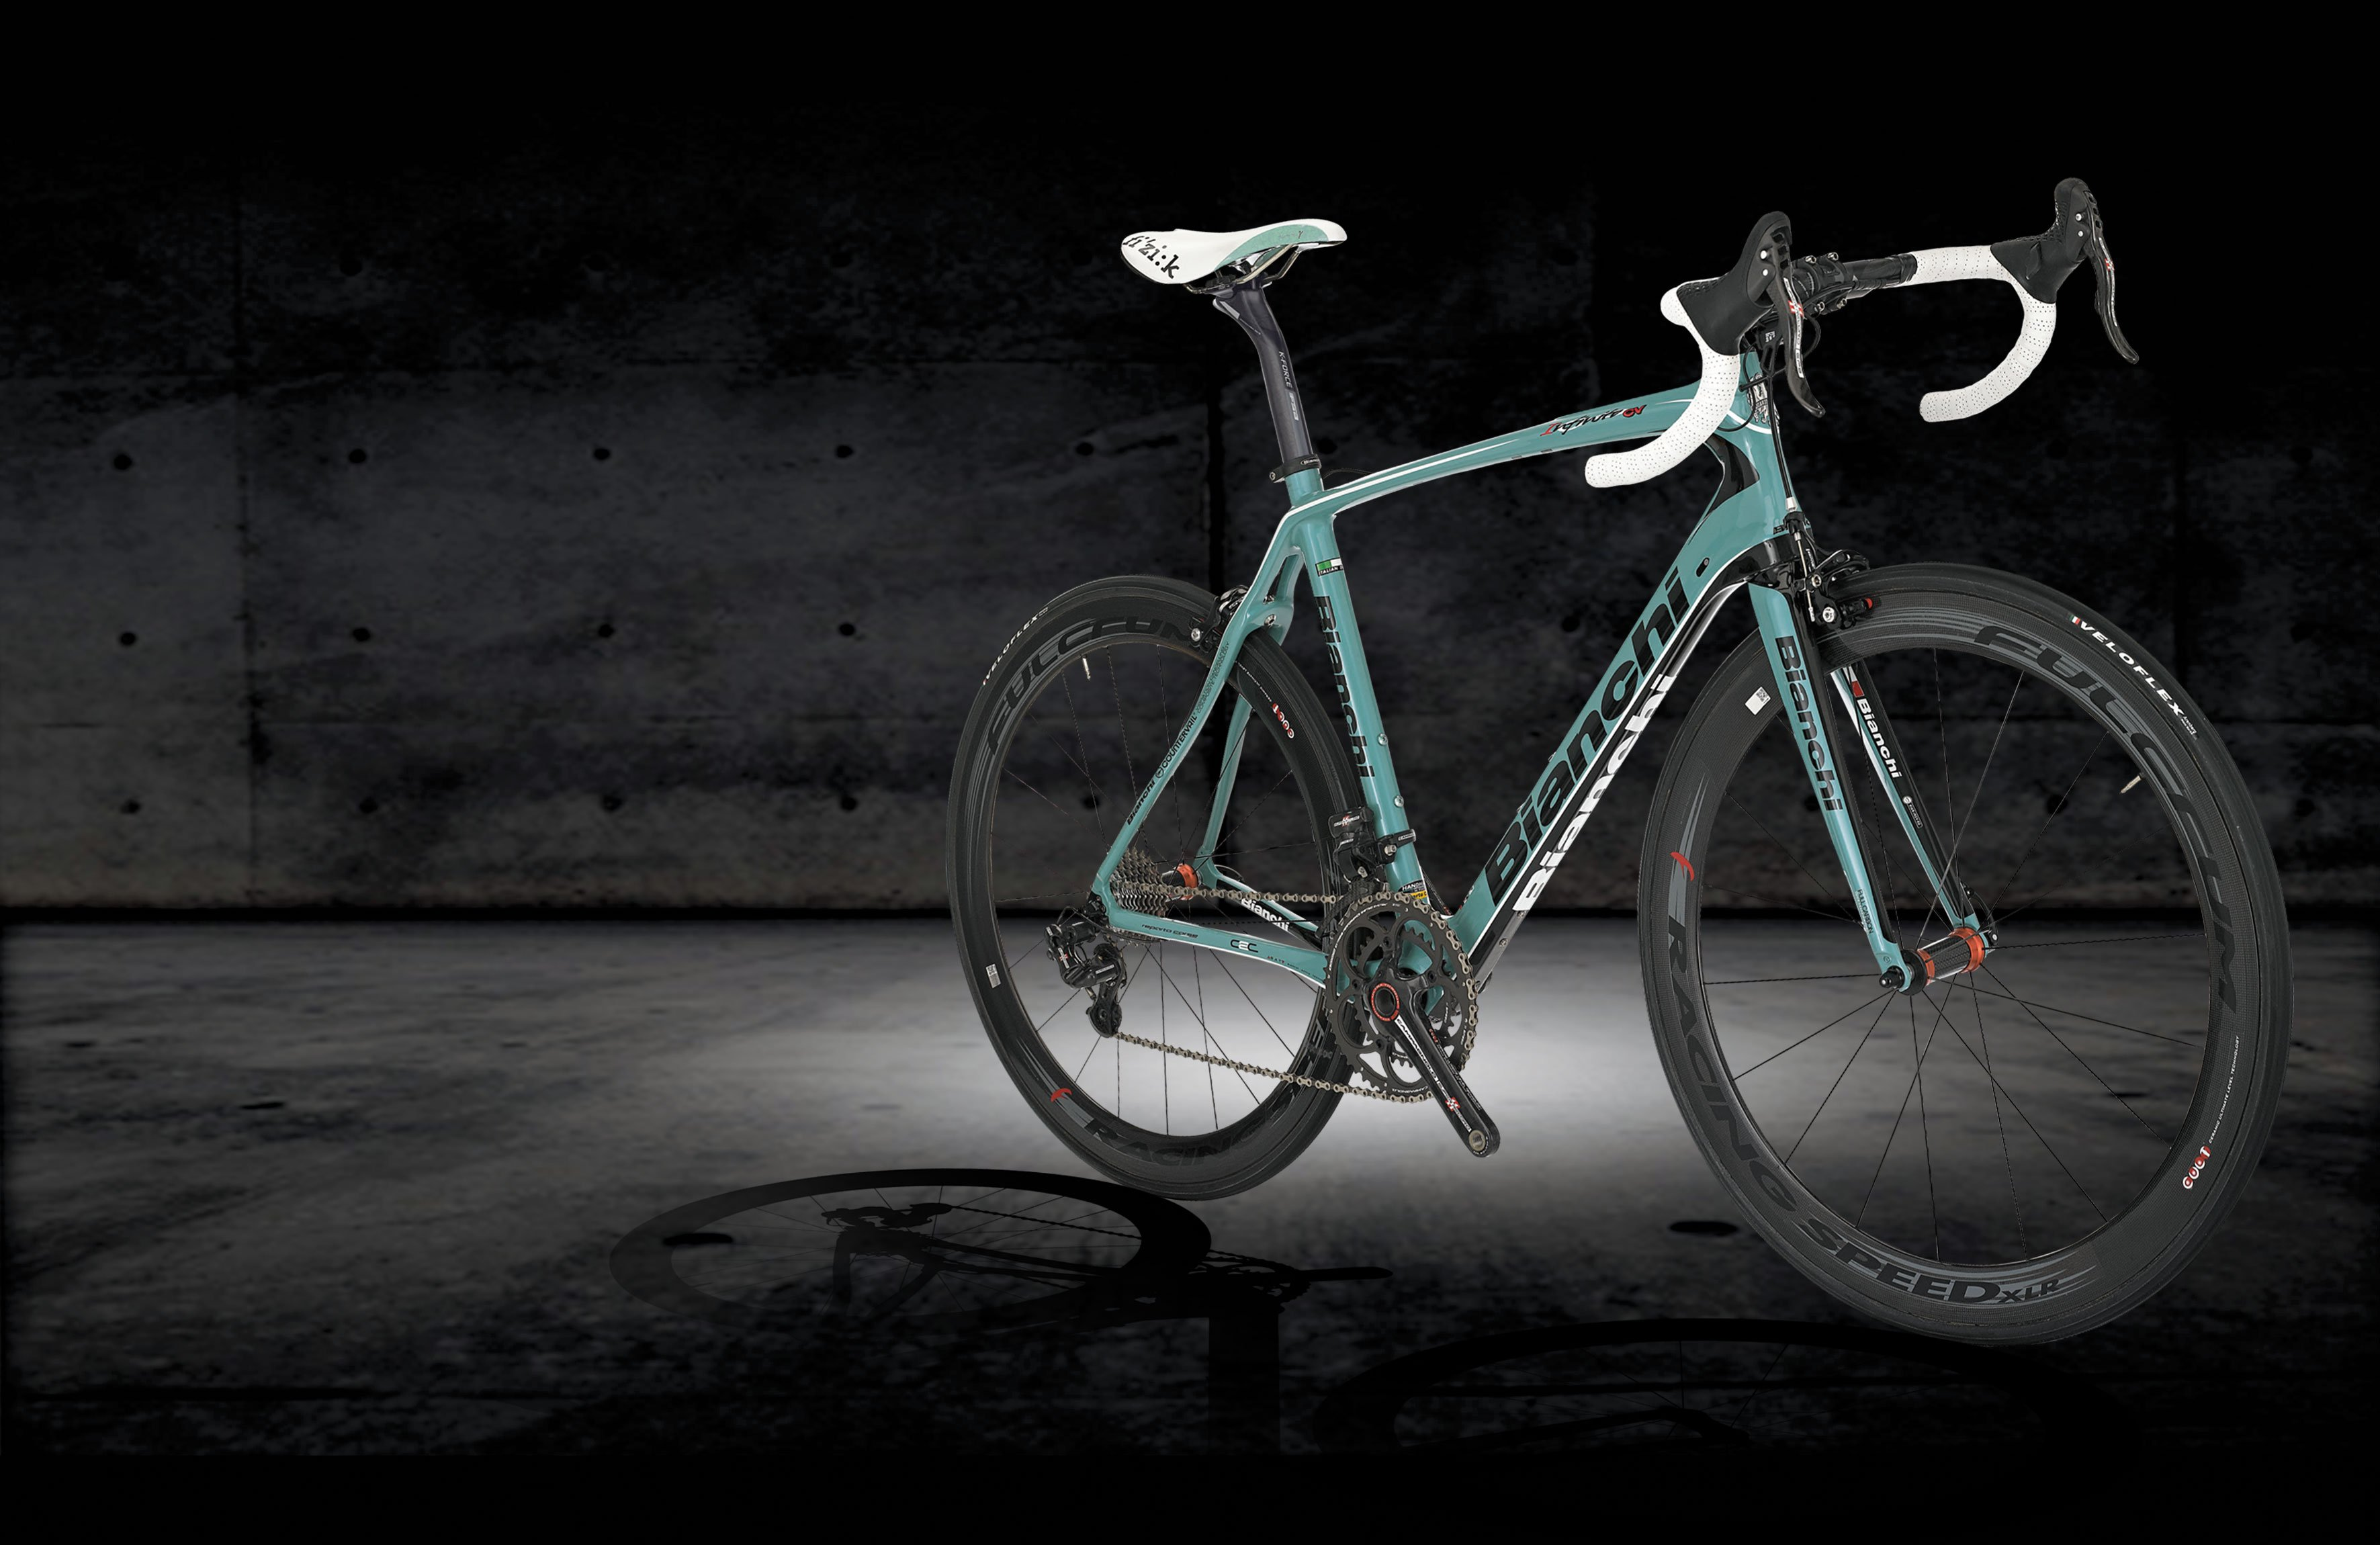 Free Download Road Bike Wallpaper 45 Modern Road Bike